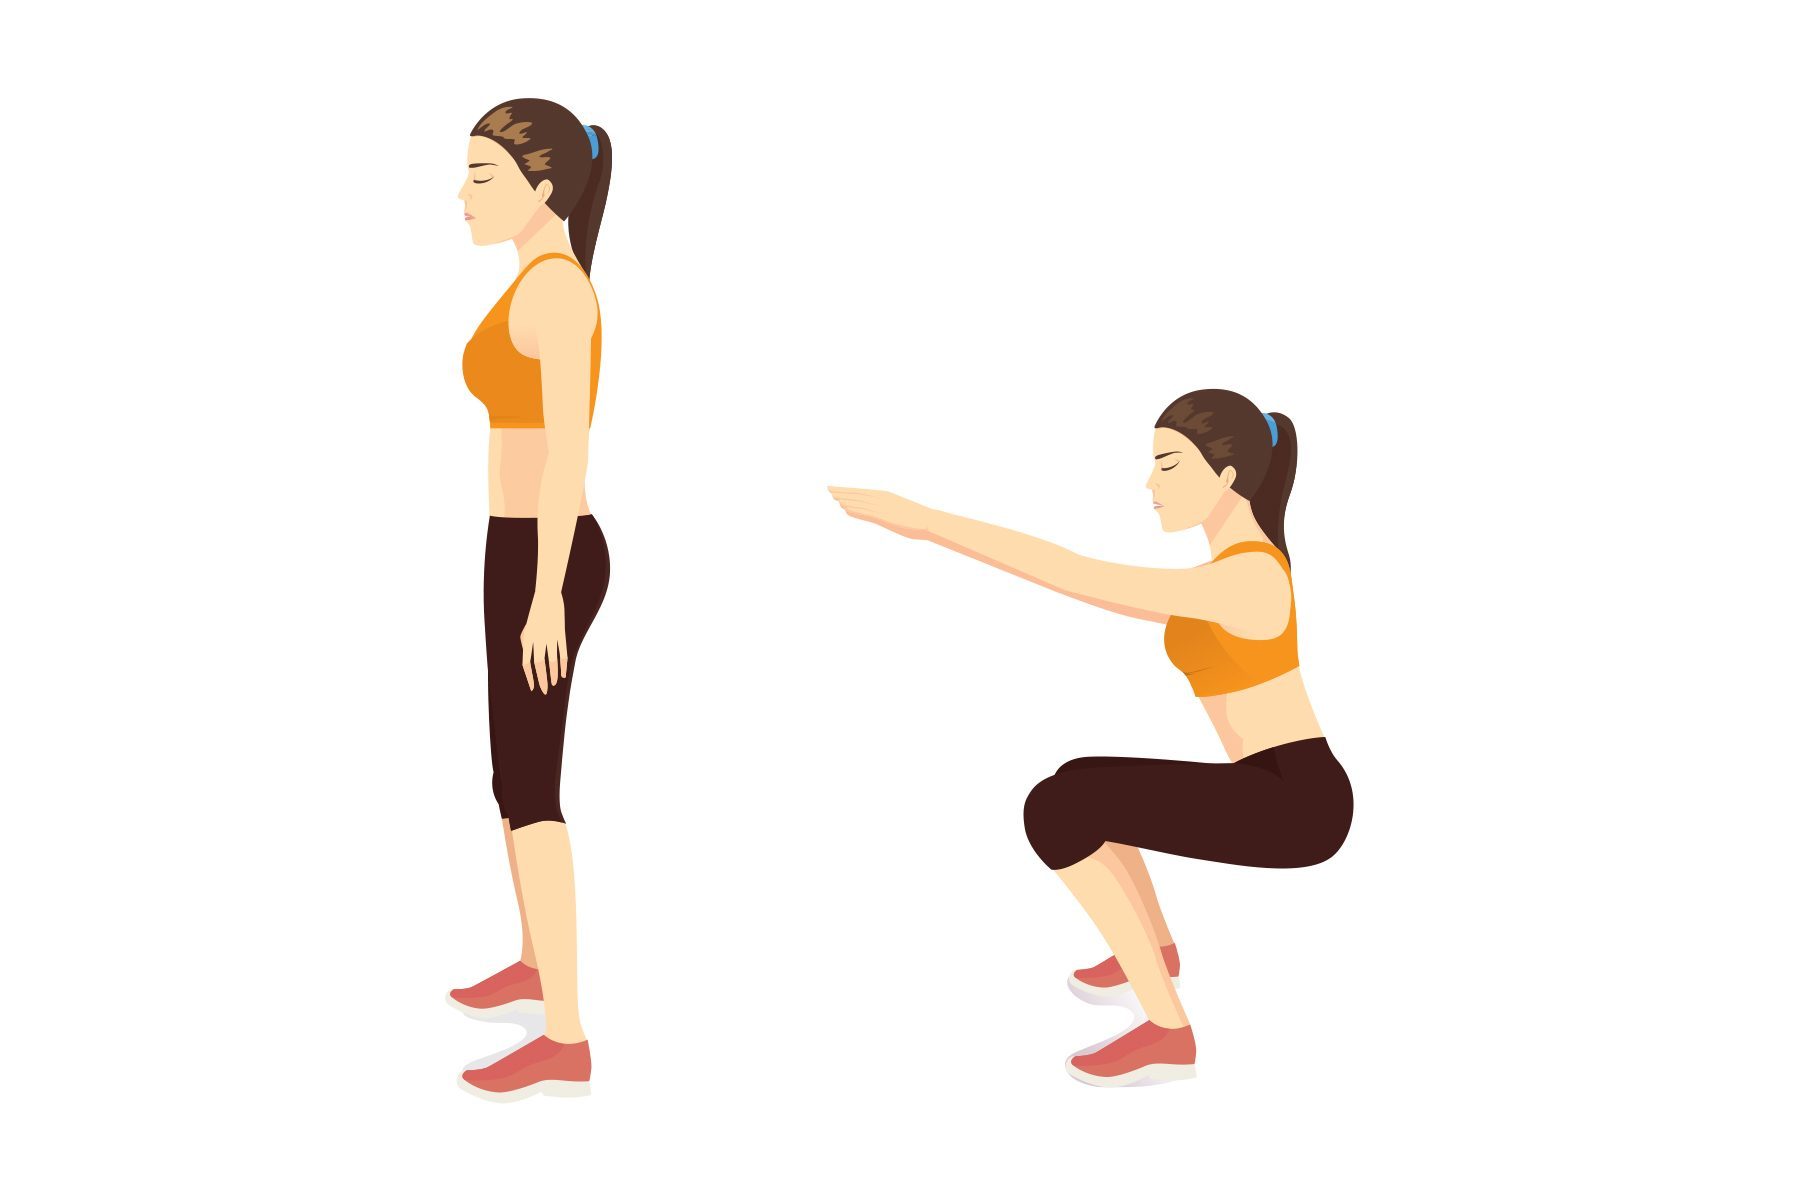 HOW TO SQUAT - Exercise For Women Over 50 - Fabulous 50s